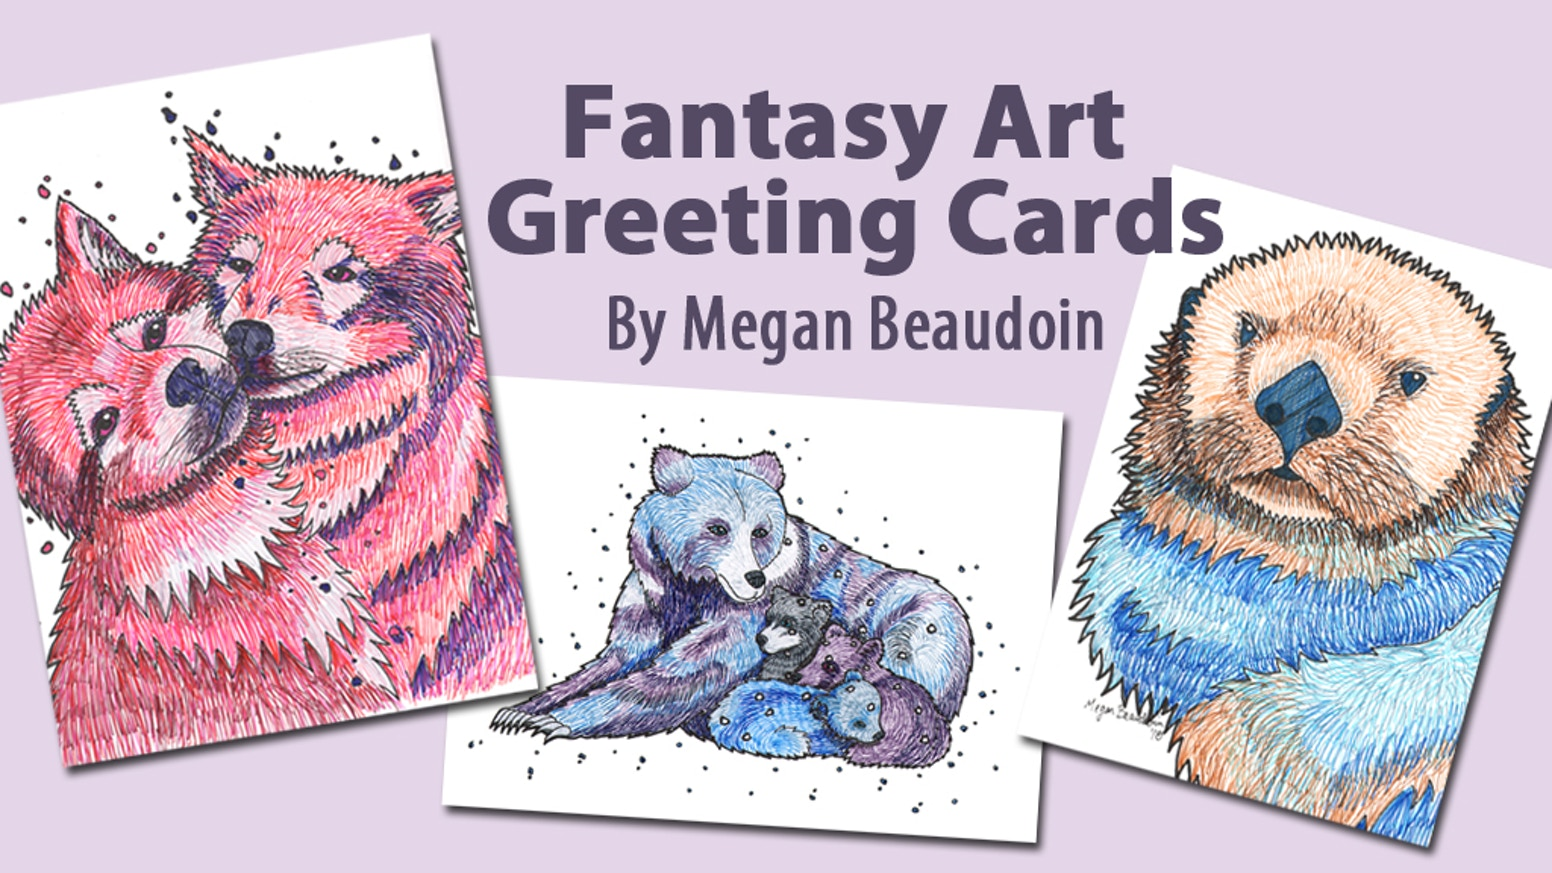 Fantasy Art Greeting Cards By Megan Beaudoin All Rewards Have Been